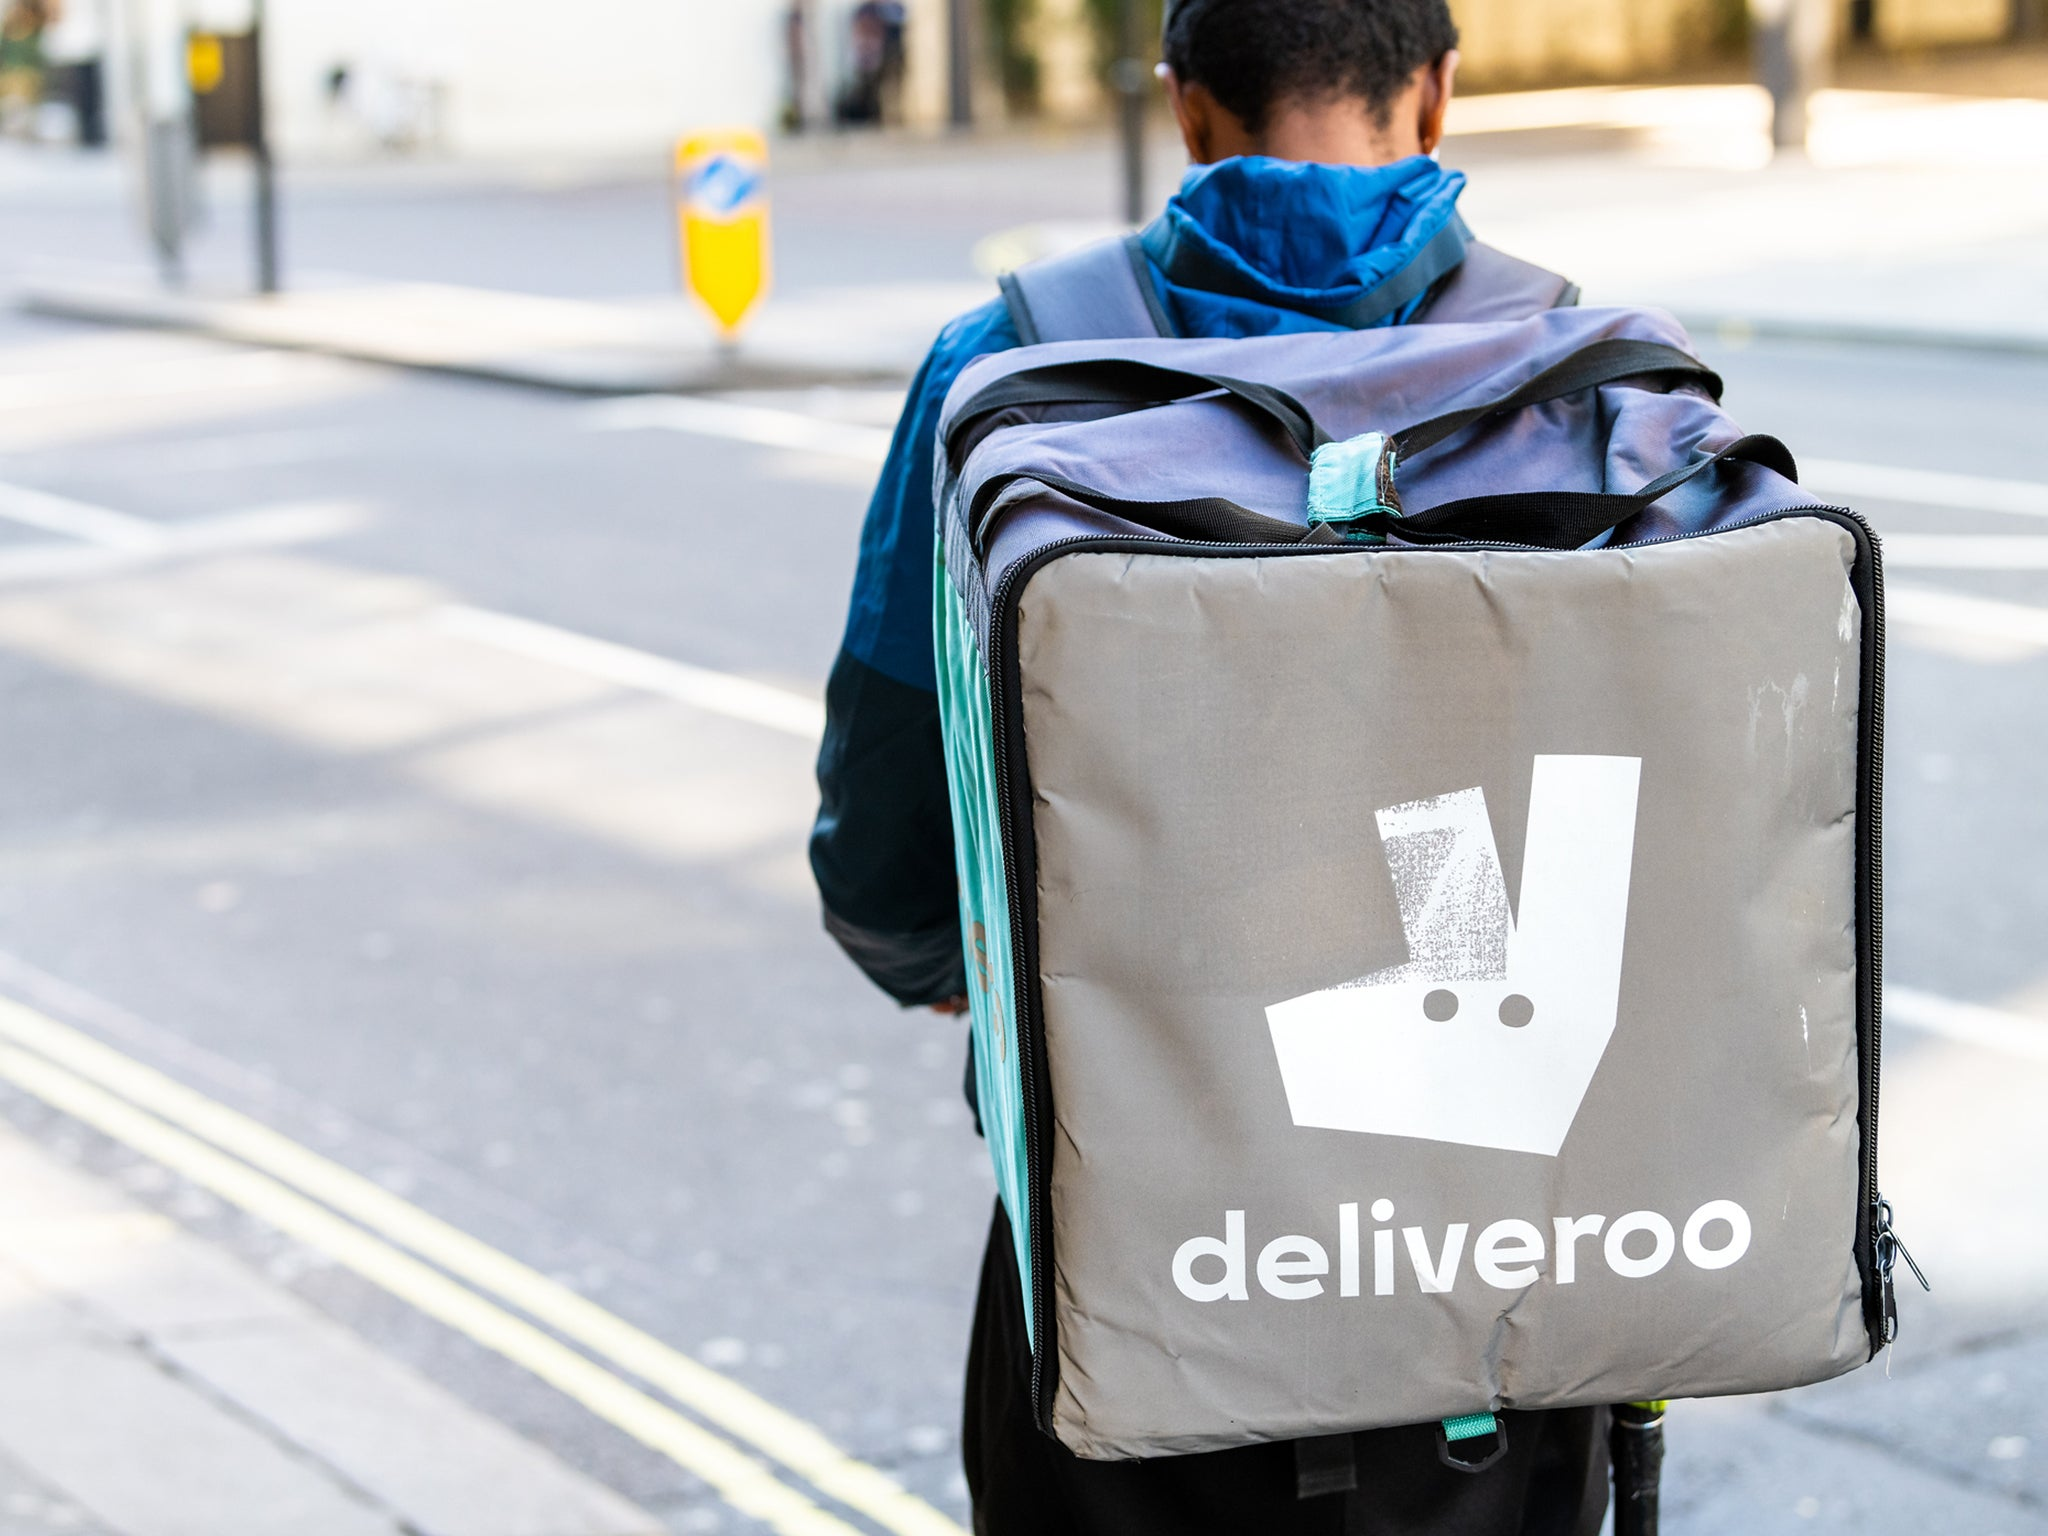 LloydsPharmacy teams up with Deliveroo to bring medication to your door in 30 minutes